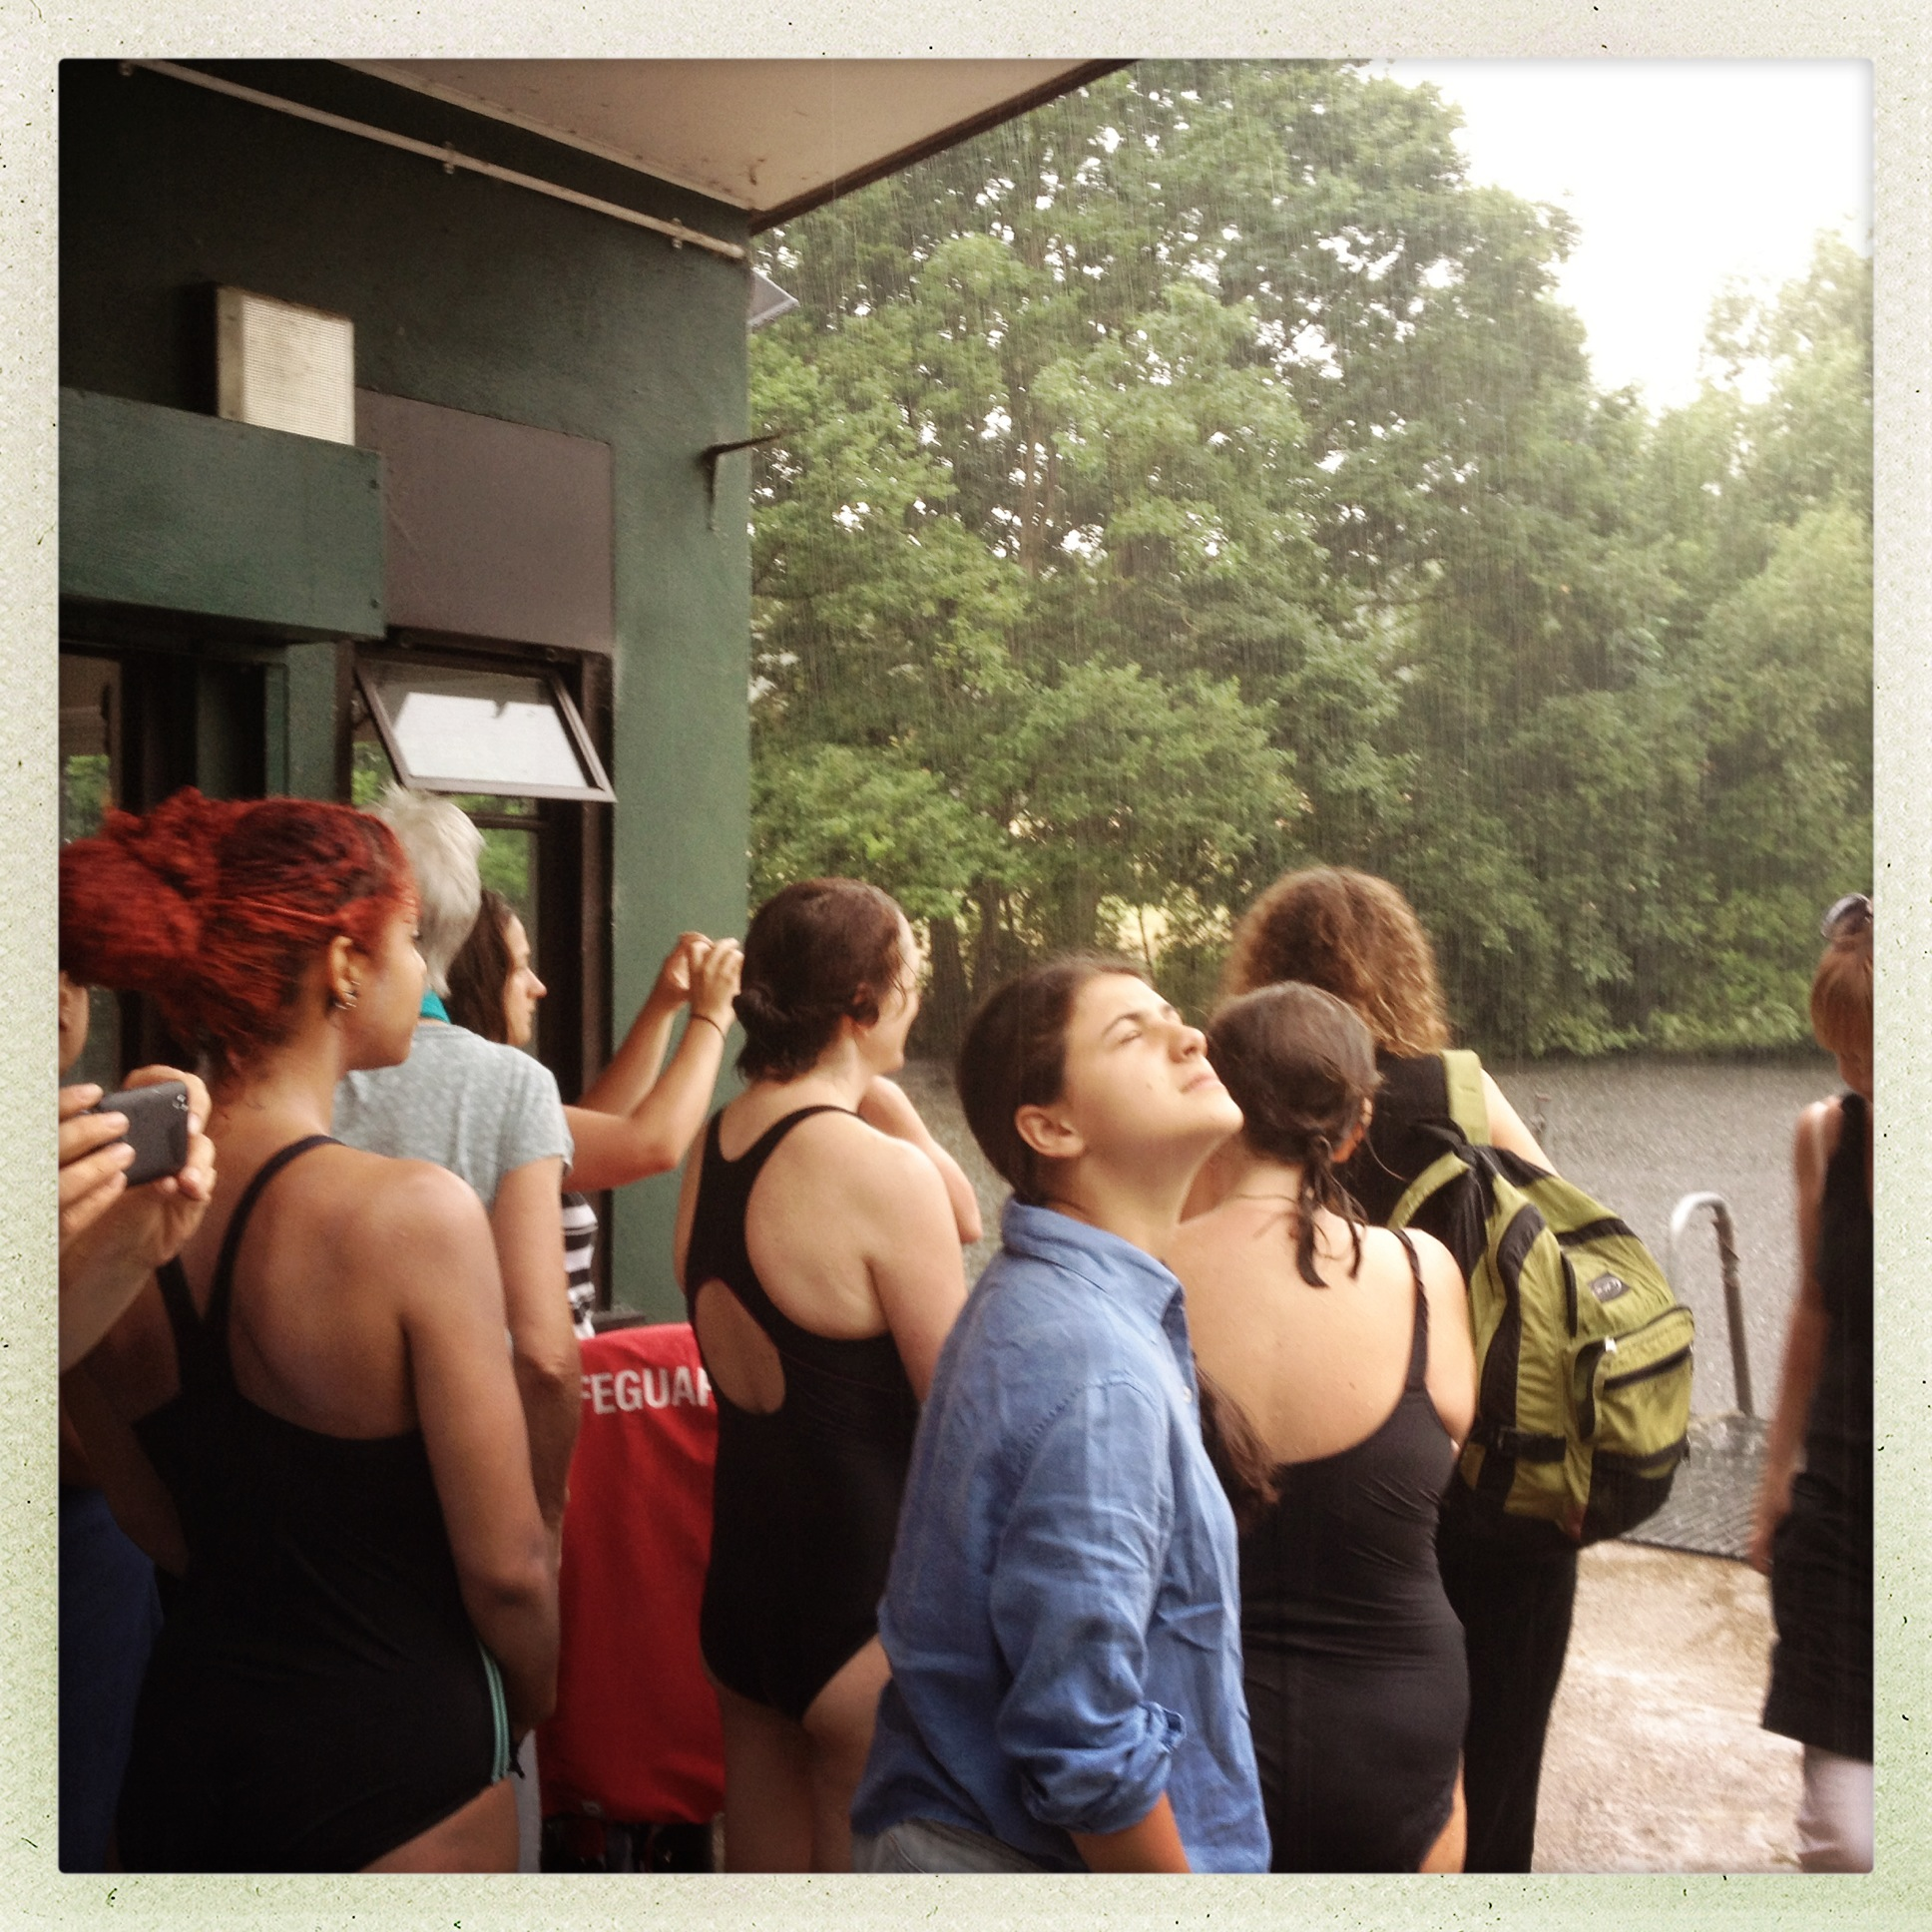 Evacuated swimmers, failing to see irony, huddle under awning to keep dry